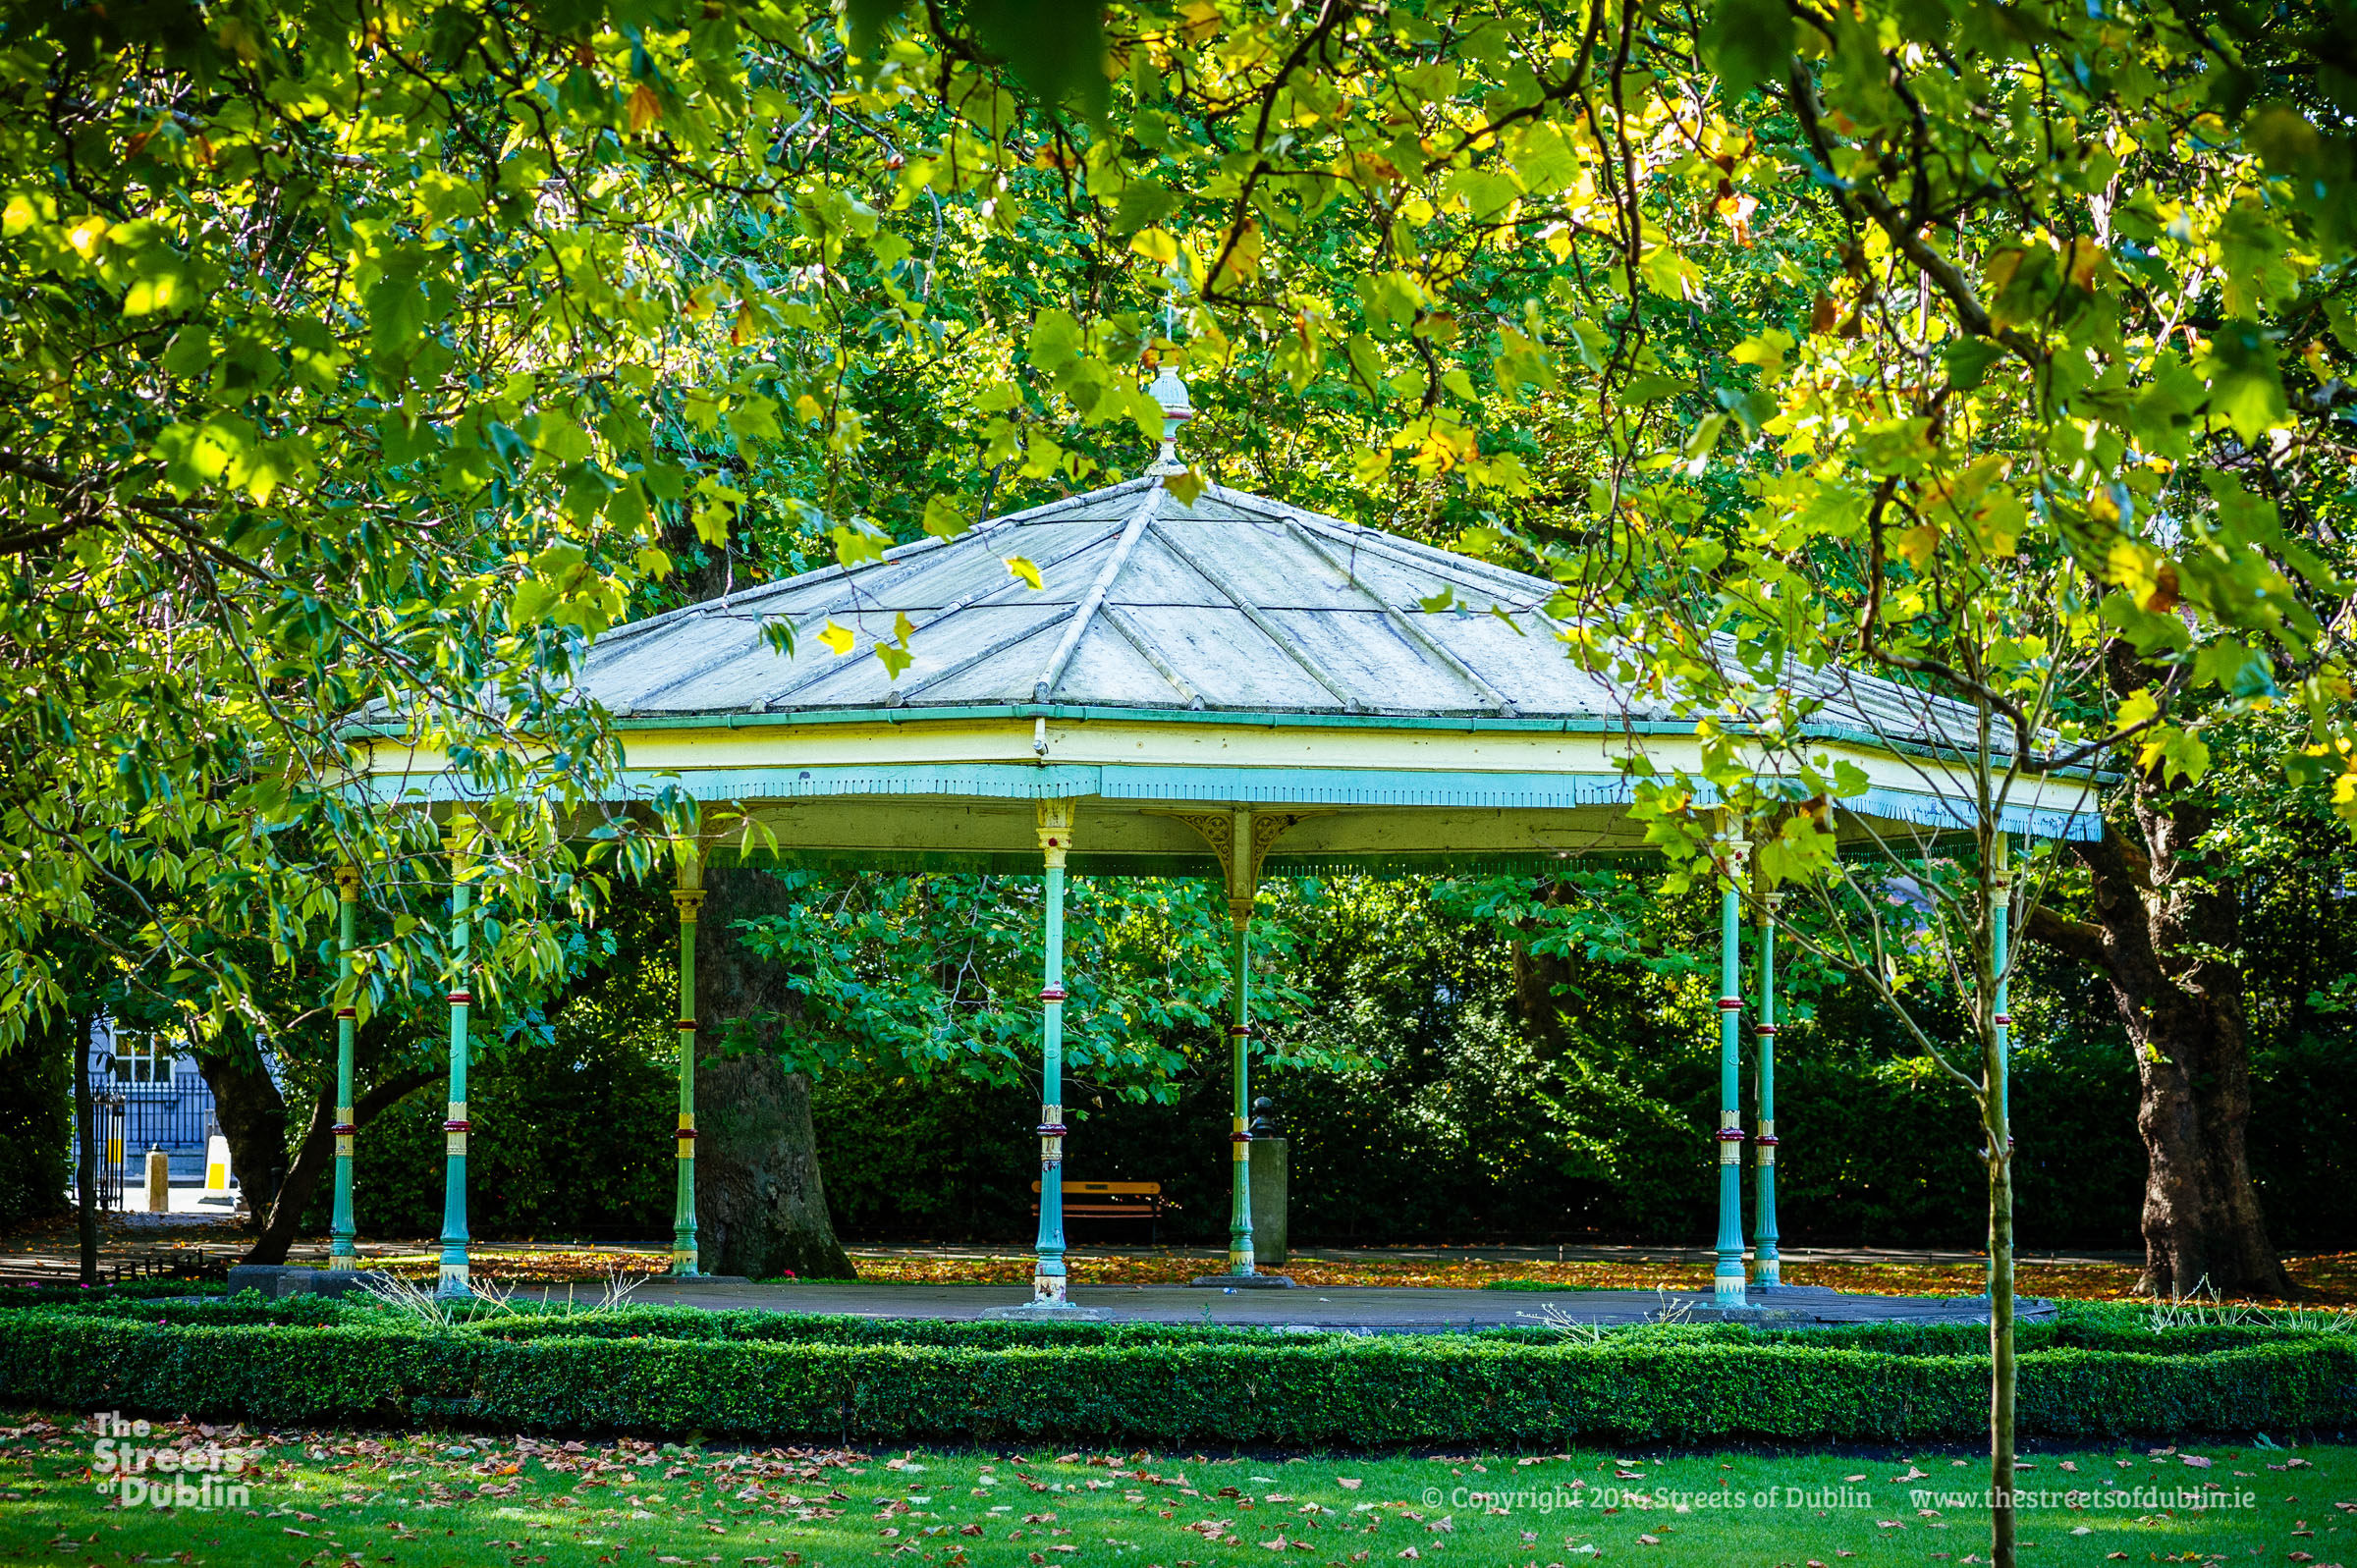 Band stand in St. Stephen's Green